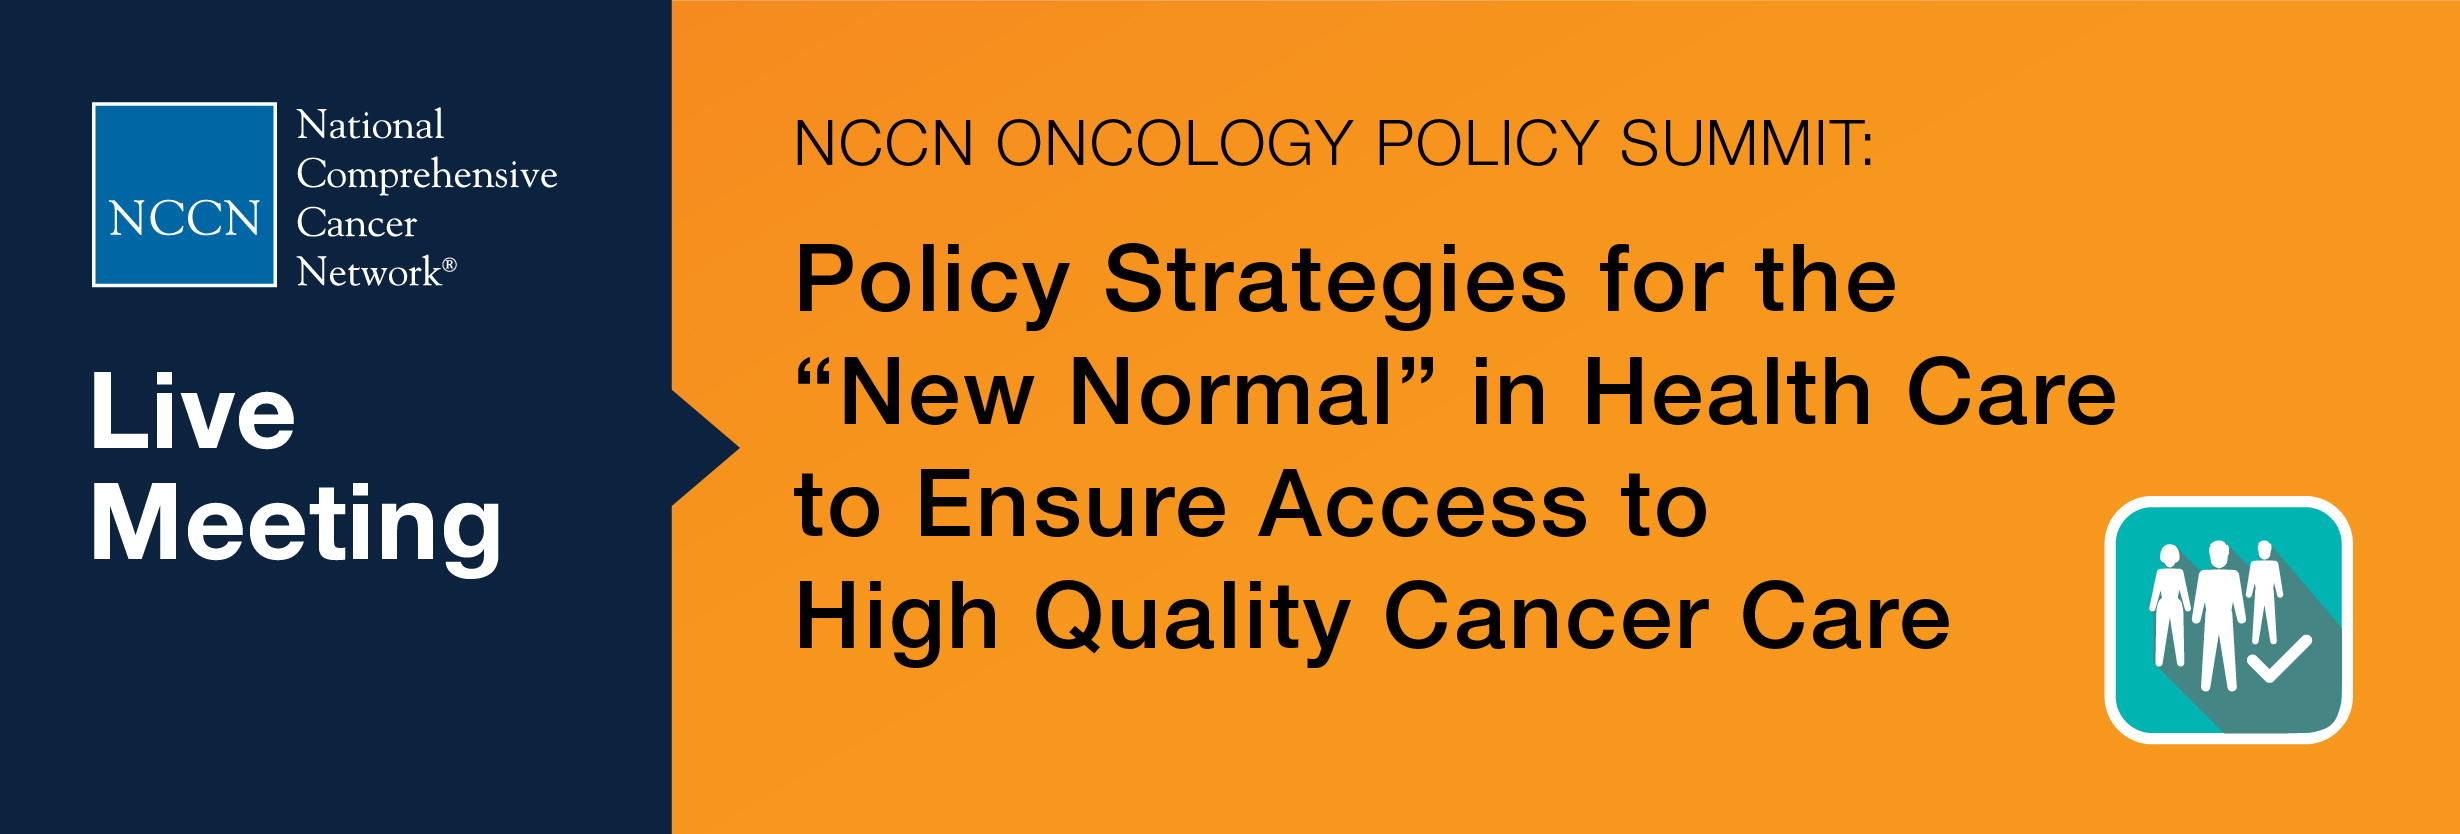 """NCCN Policy Summit: Policy Strategies for the """"New Normal"""" in Health Care to Ensure Access to High Quality Cancer Care"""